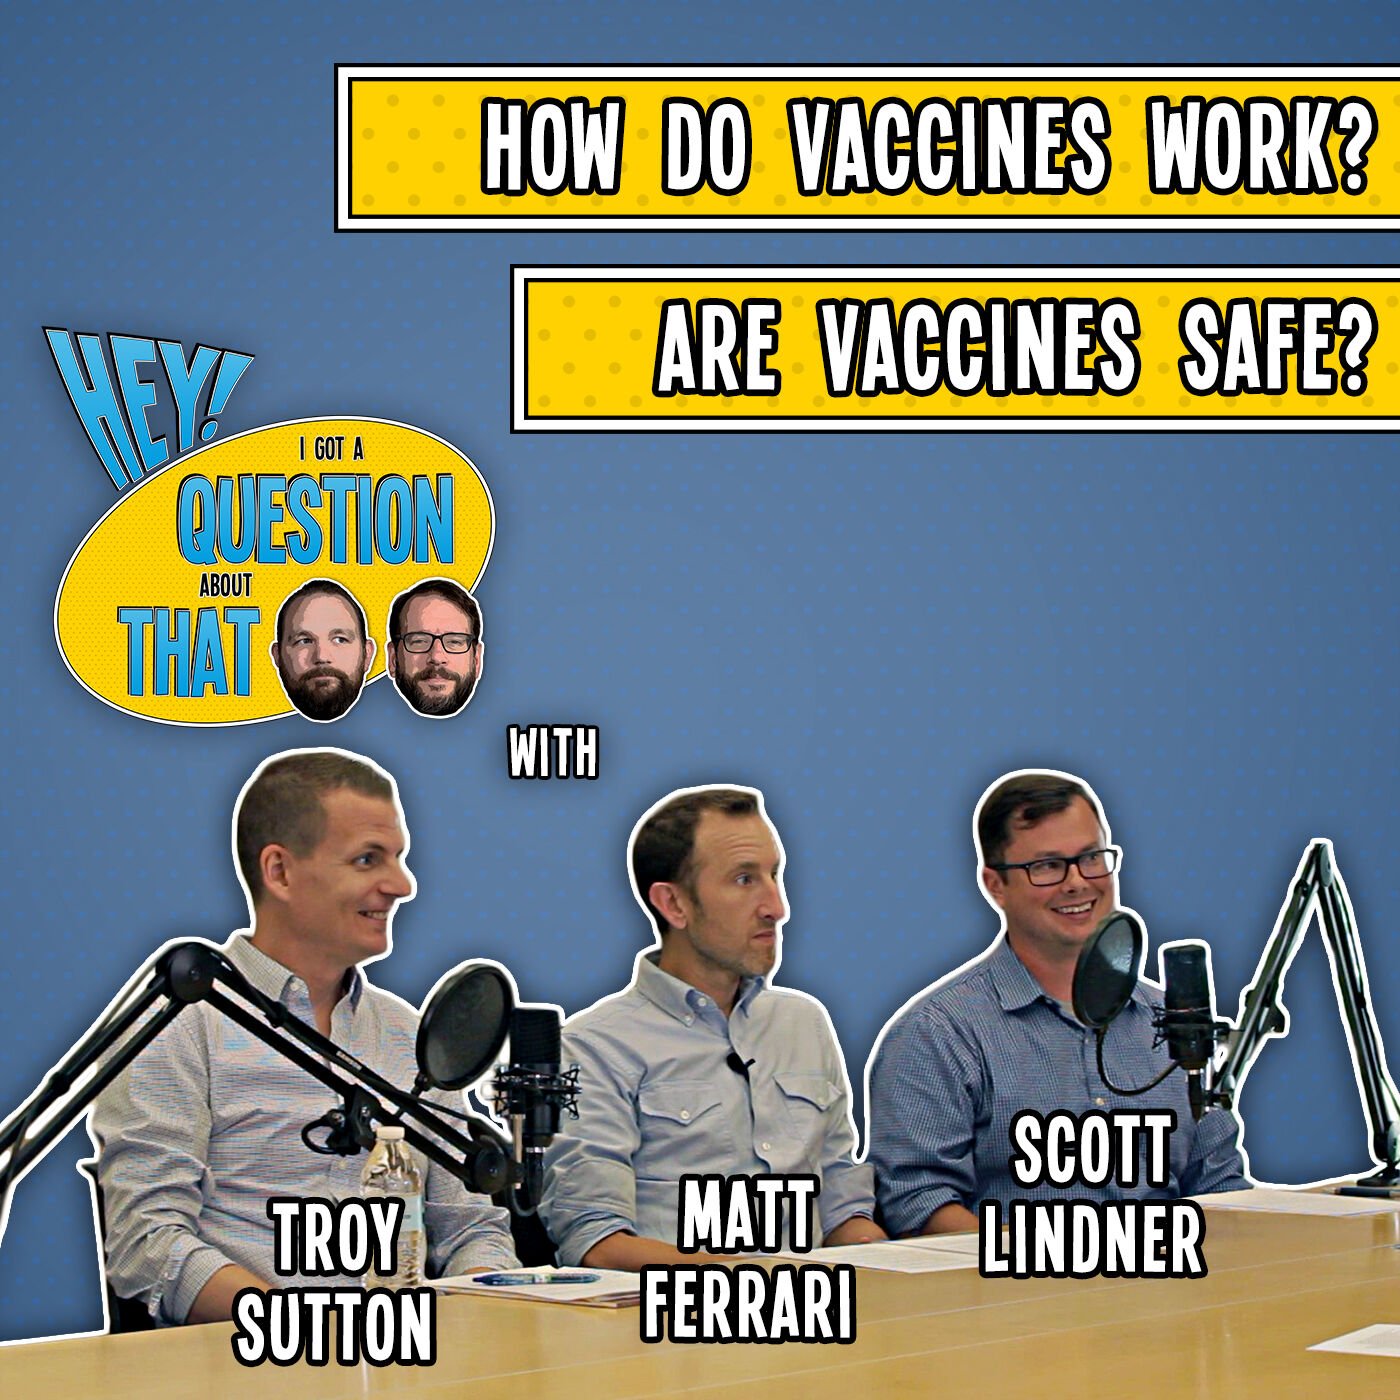 How Do Vaccines Work? Are Vaccines Safe?